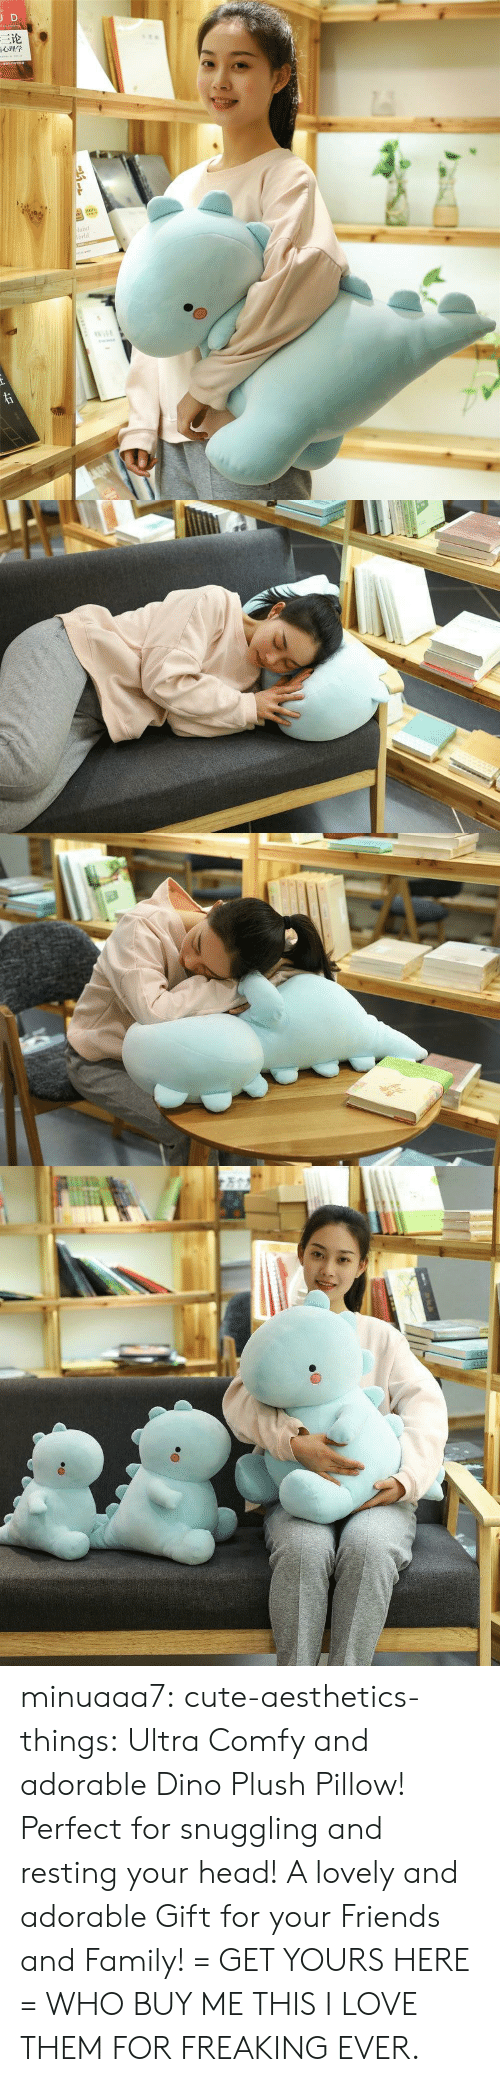 dino: JD  三论  laint  orld  TNAR  ww.e minuaaa7:  cute-aesthetics-things:  Ultra Comfy and adorable Dino Plush Pillow! Perfect for snuggling and resting your head! A lovely and adorable Gift for your Friends and Family! = GET YOURS HERE =  WHO BUY ME THIS I LOVE THEM FOR FREAKING EVER.